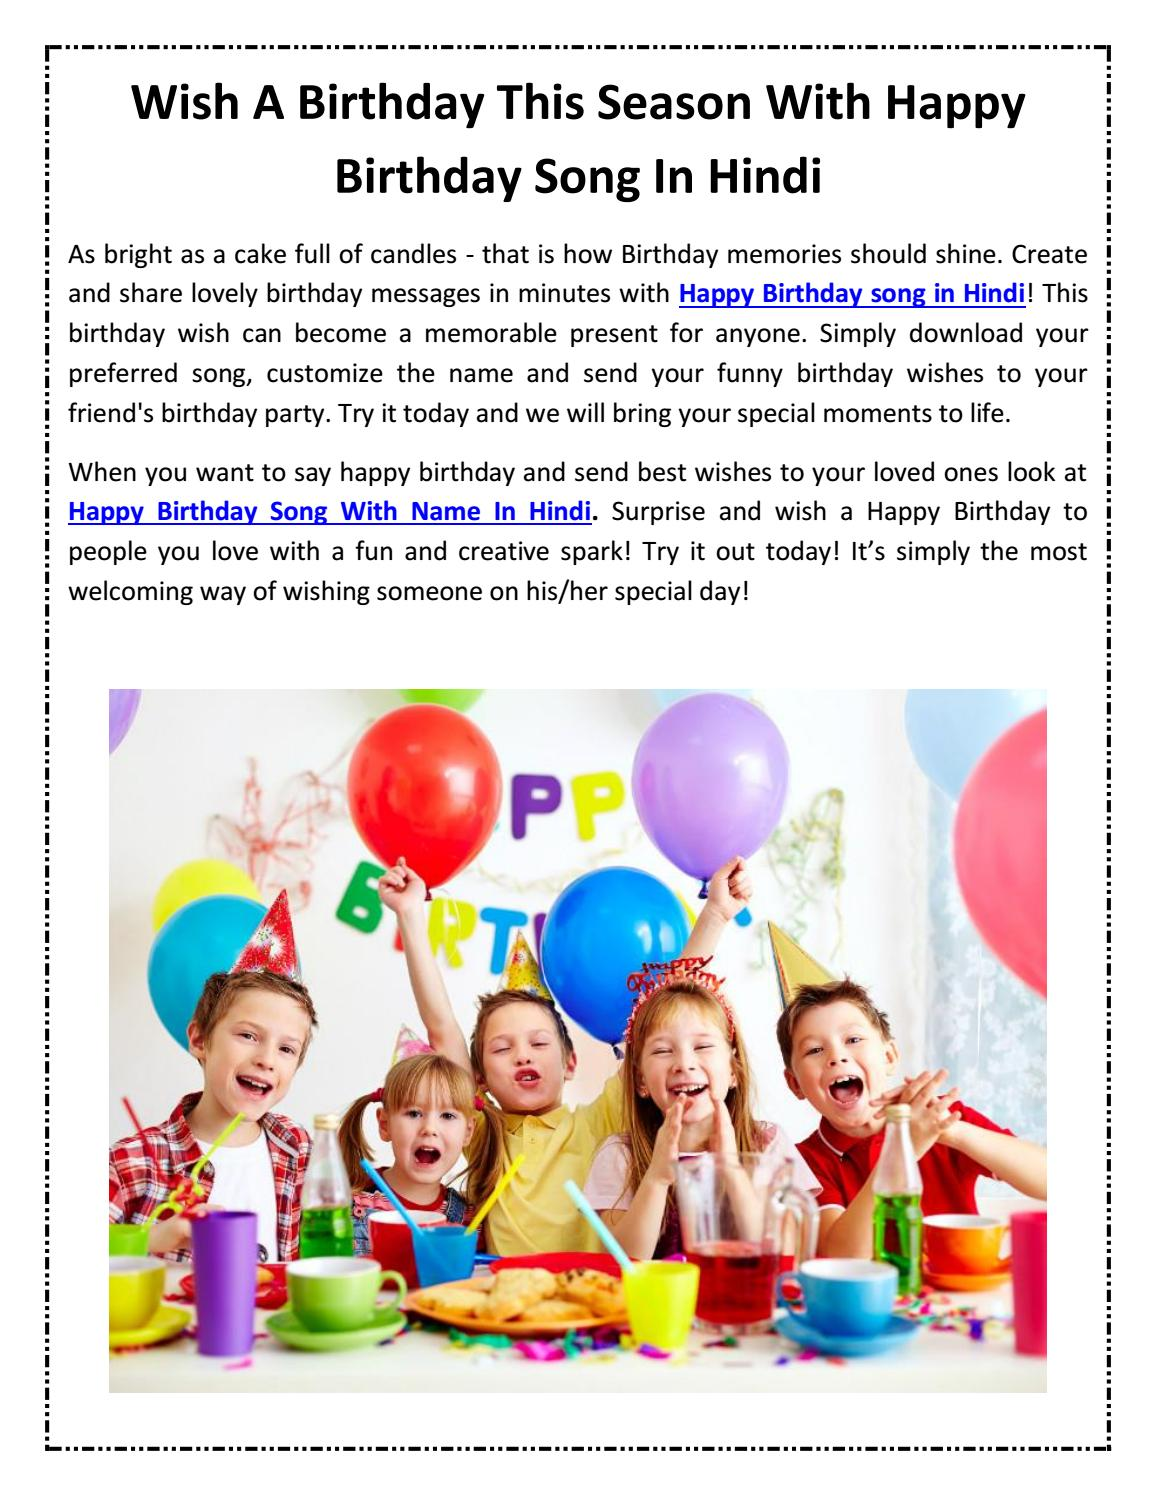 Wish A Birthday This Season With Happy Birthday Song In Hindi By Birthday Songs Issuu